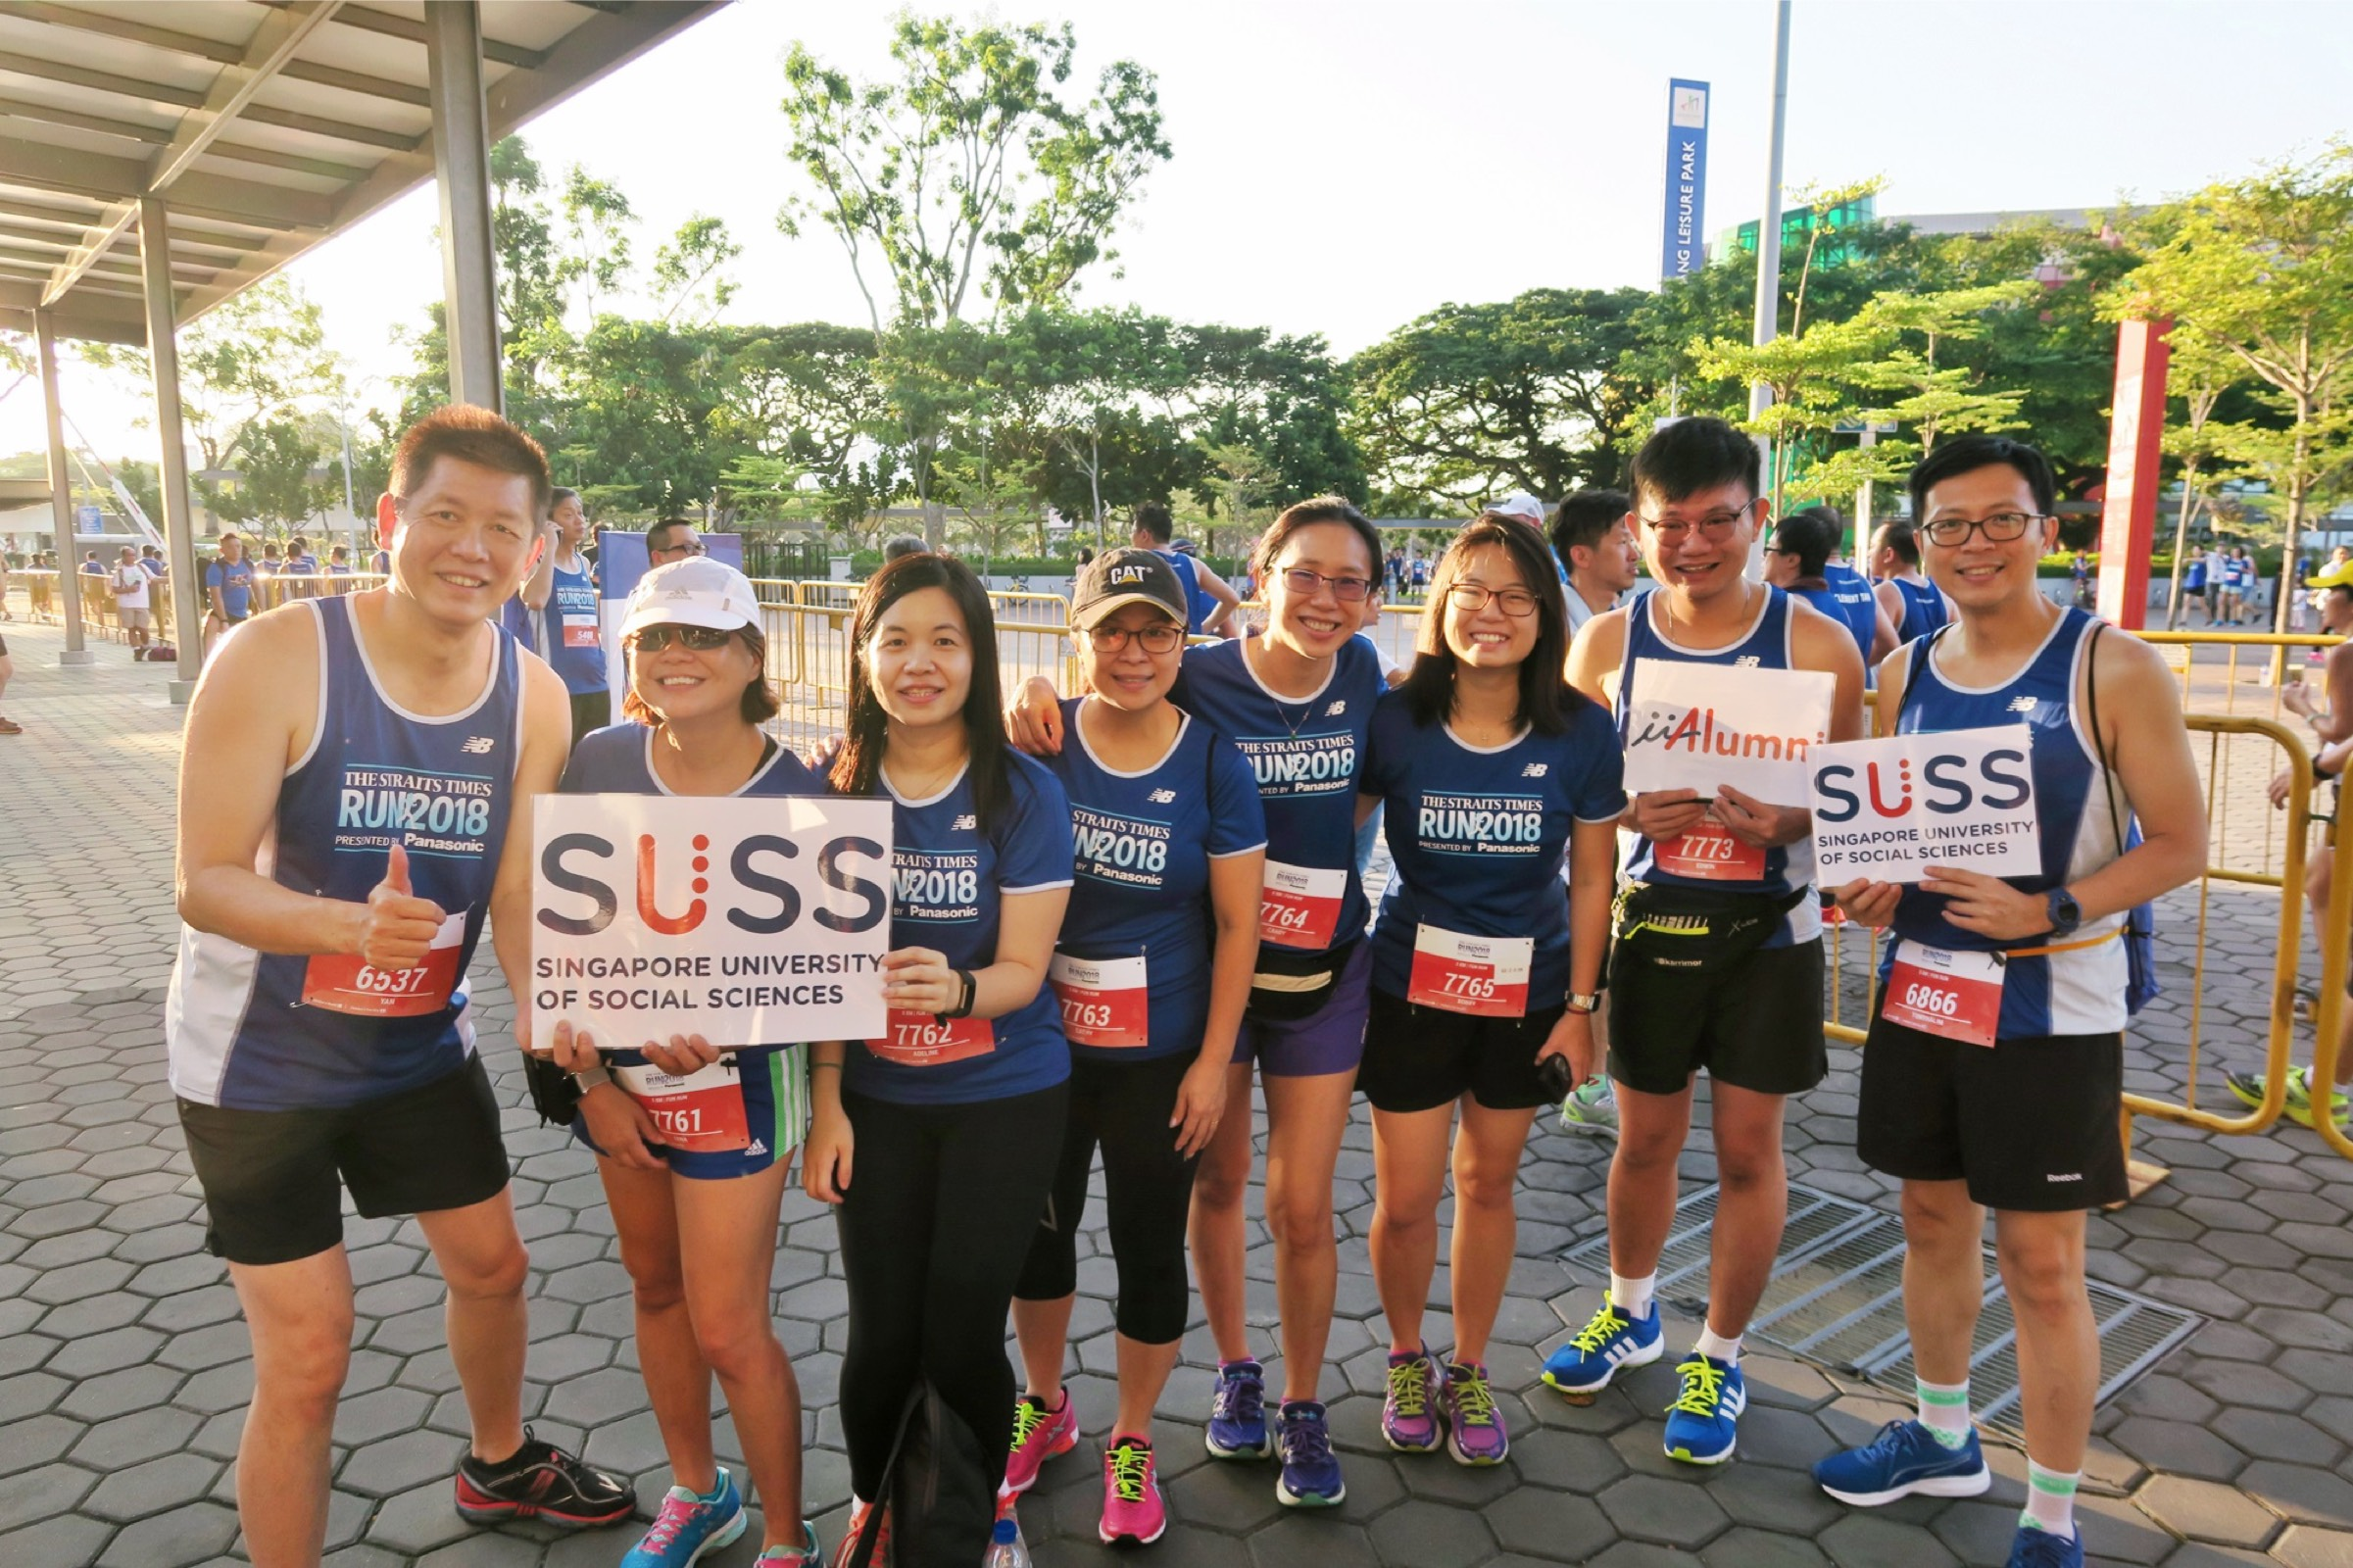 The Straits Time Run